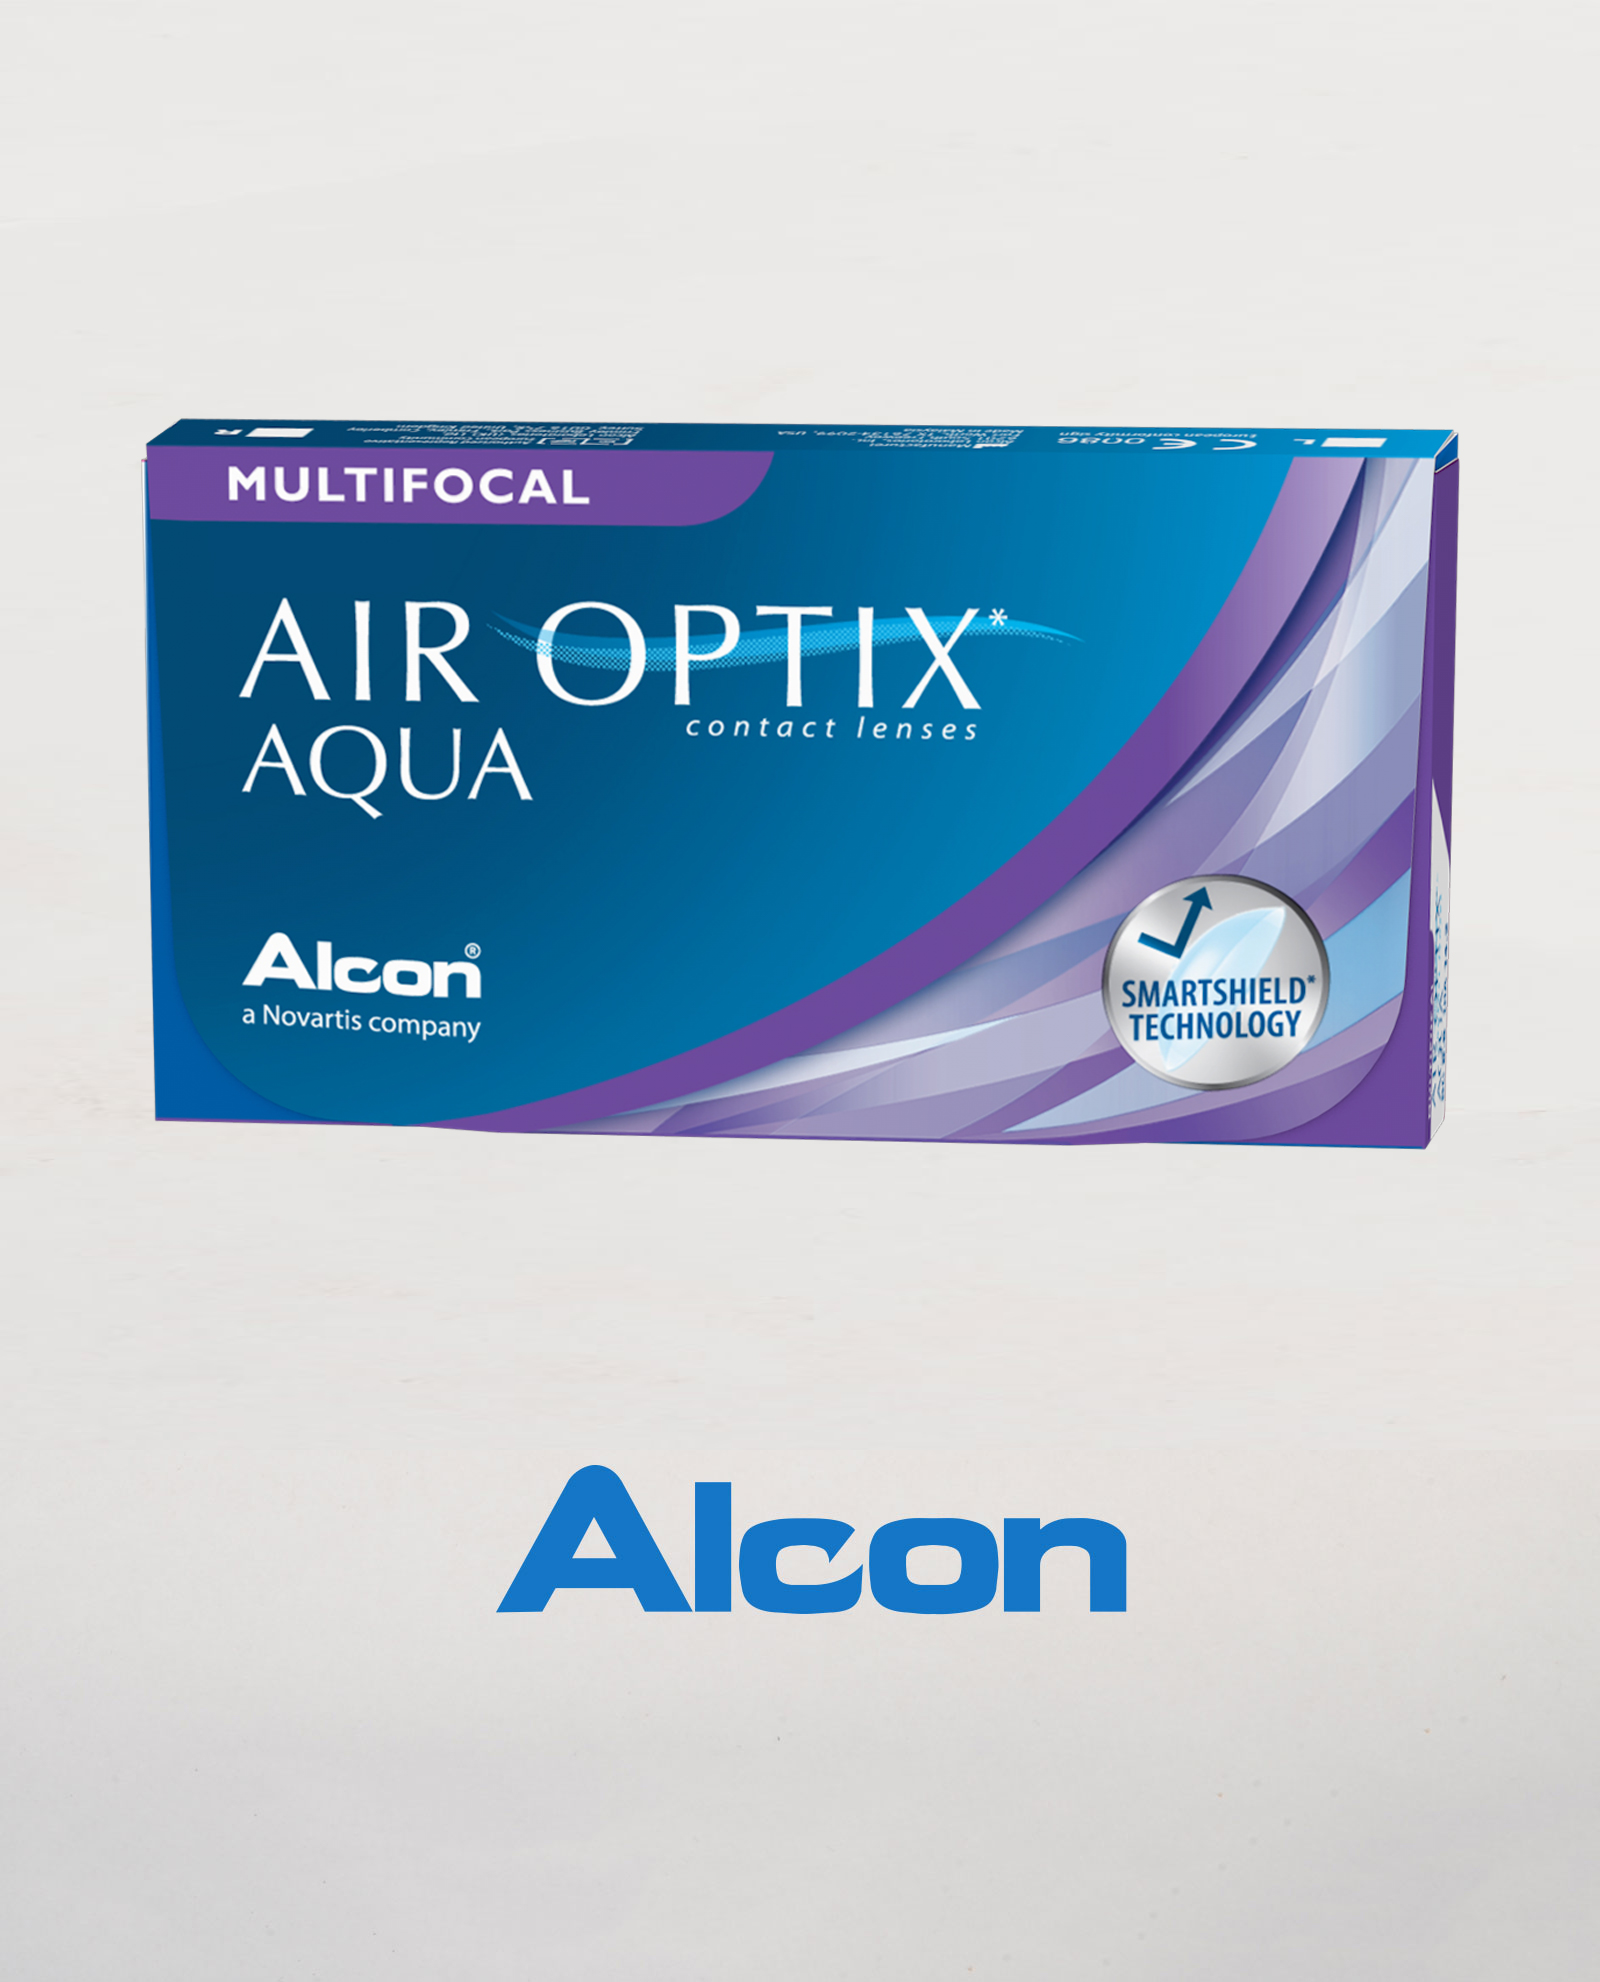 Alcon Air Optix Aqua Multifocal Oculus Optika